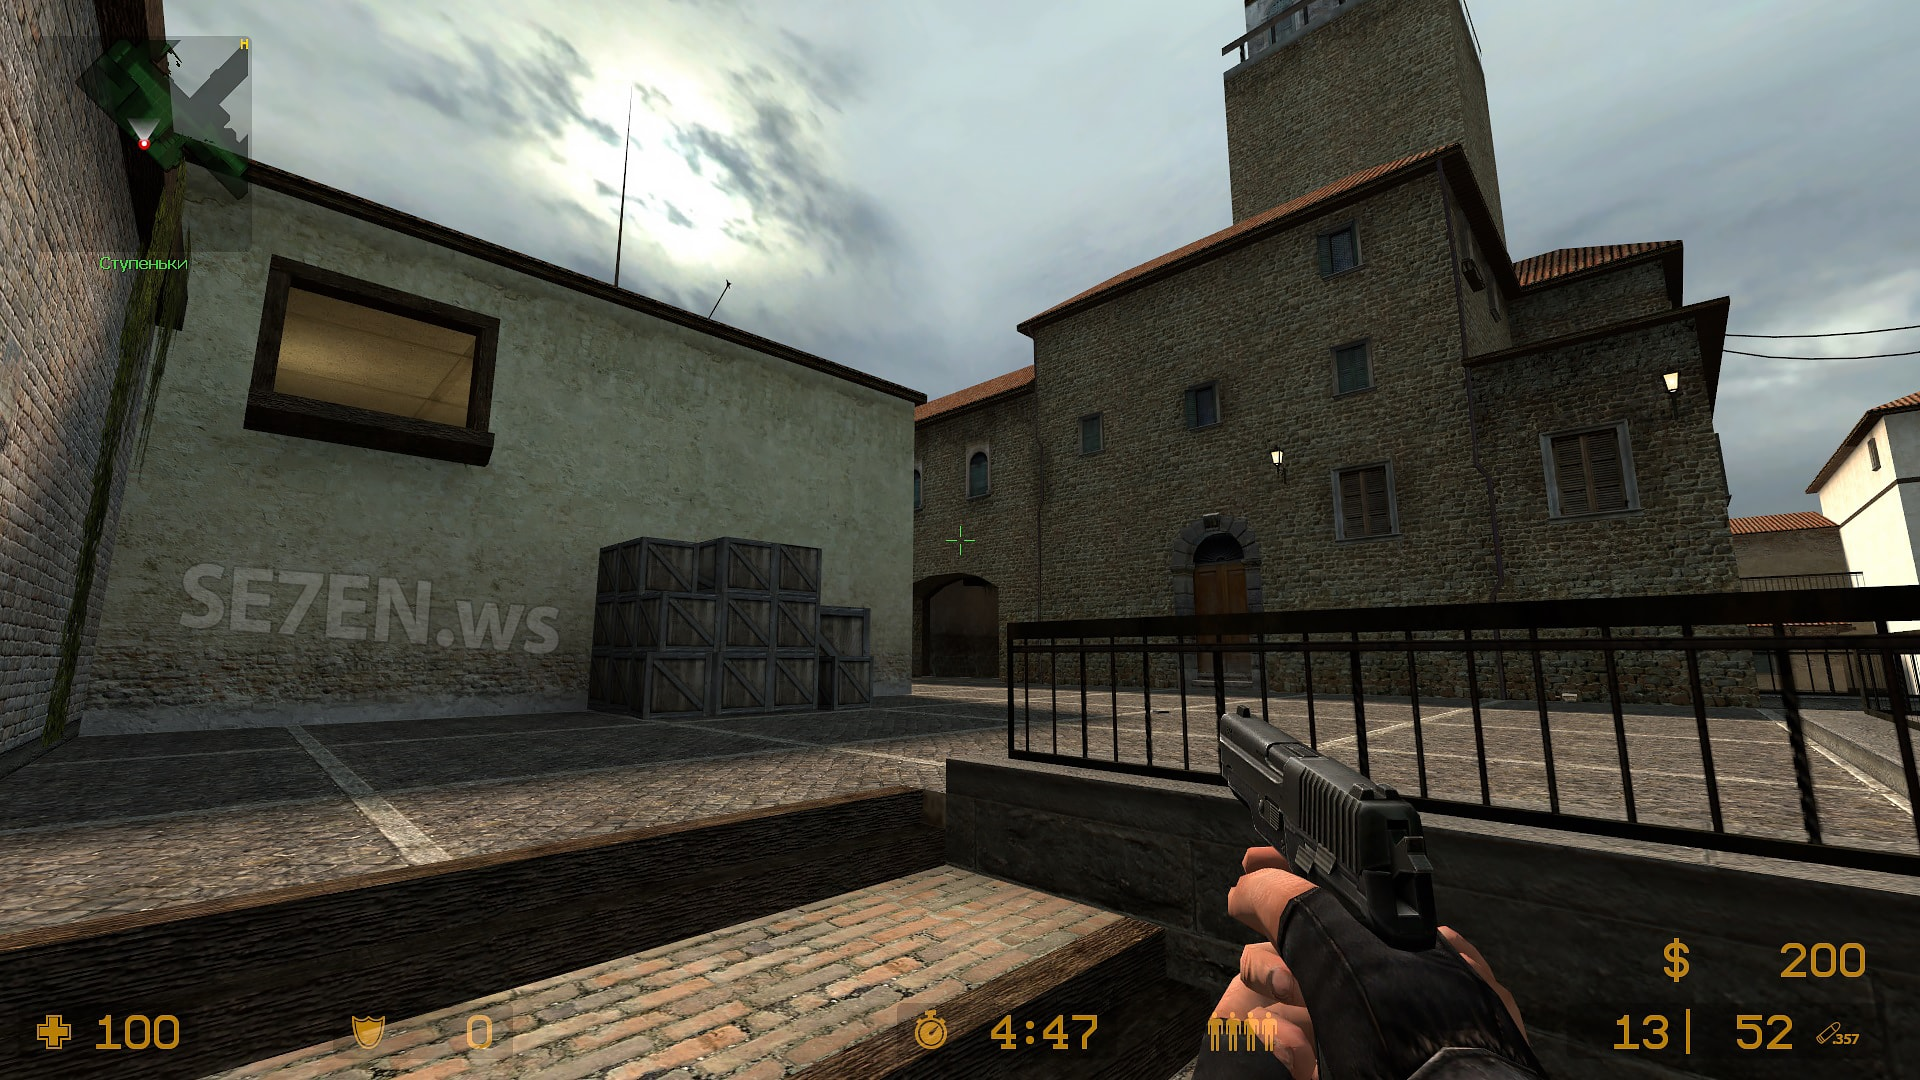 cd key authentication invalid for internet servers counter strike source